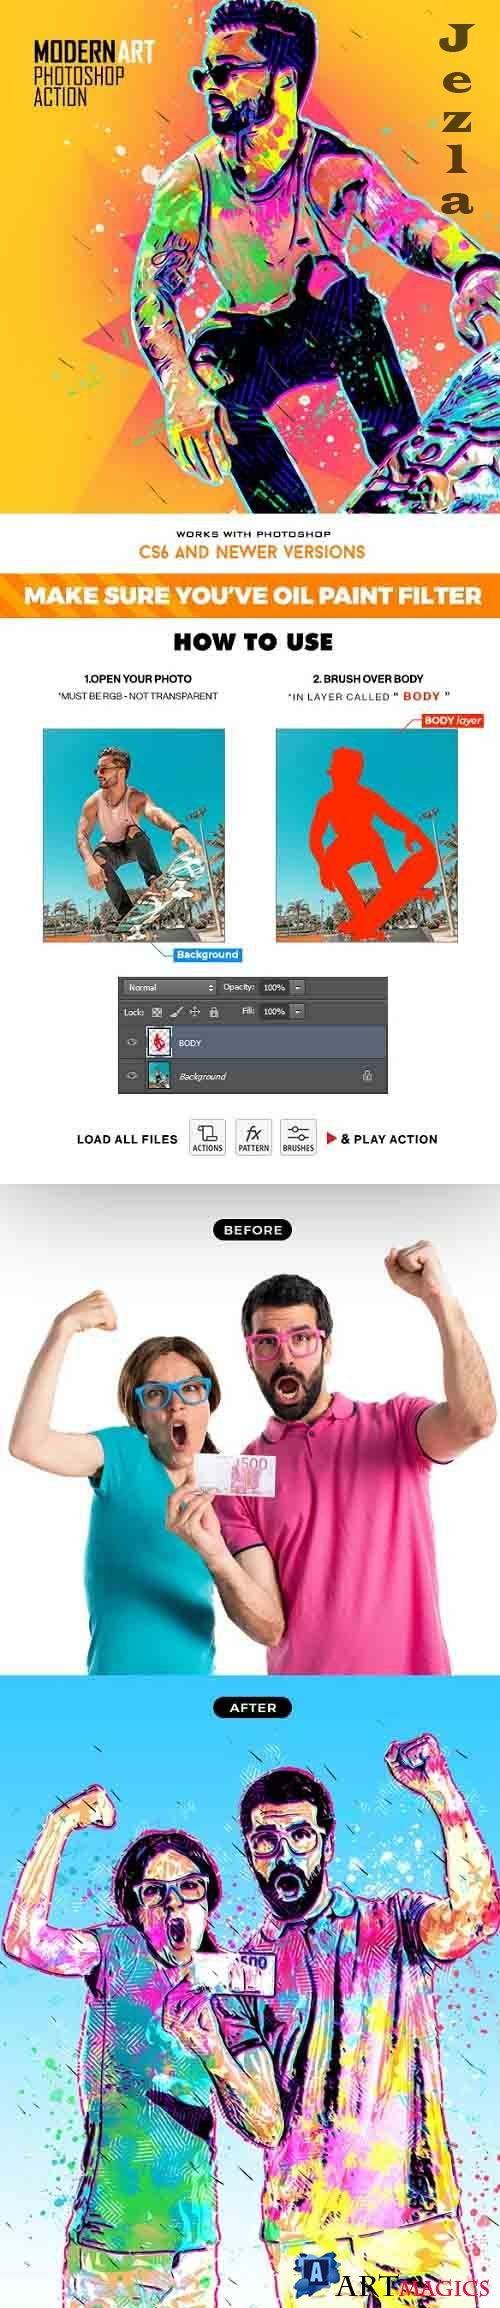 GraphicRiver - Modern Art Photoshop Action 30855119